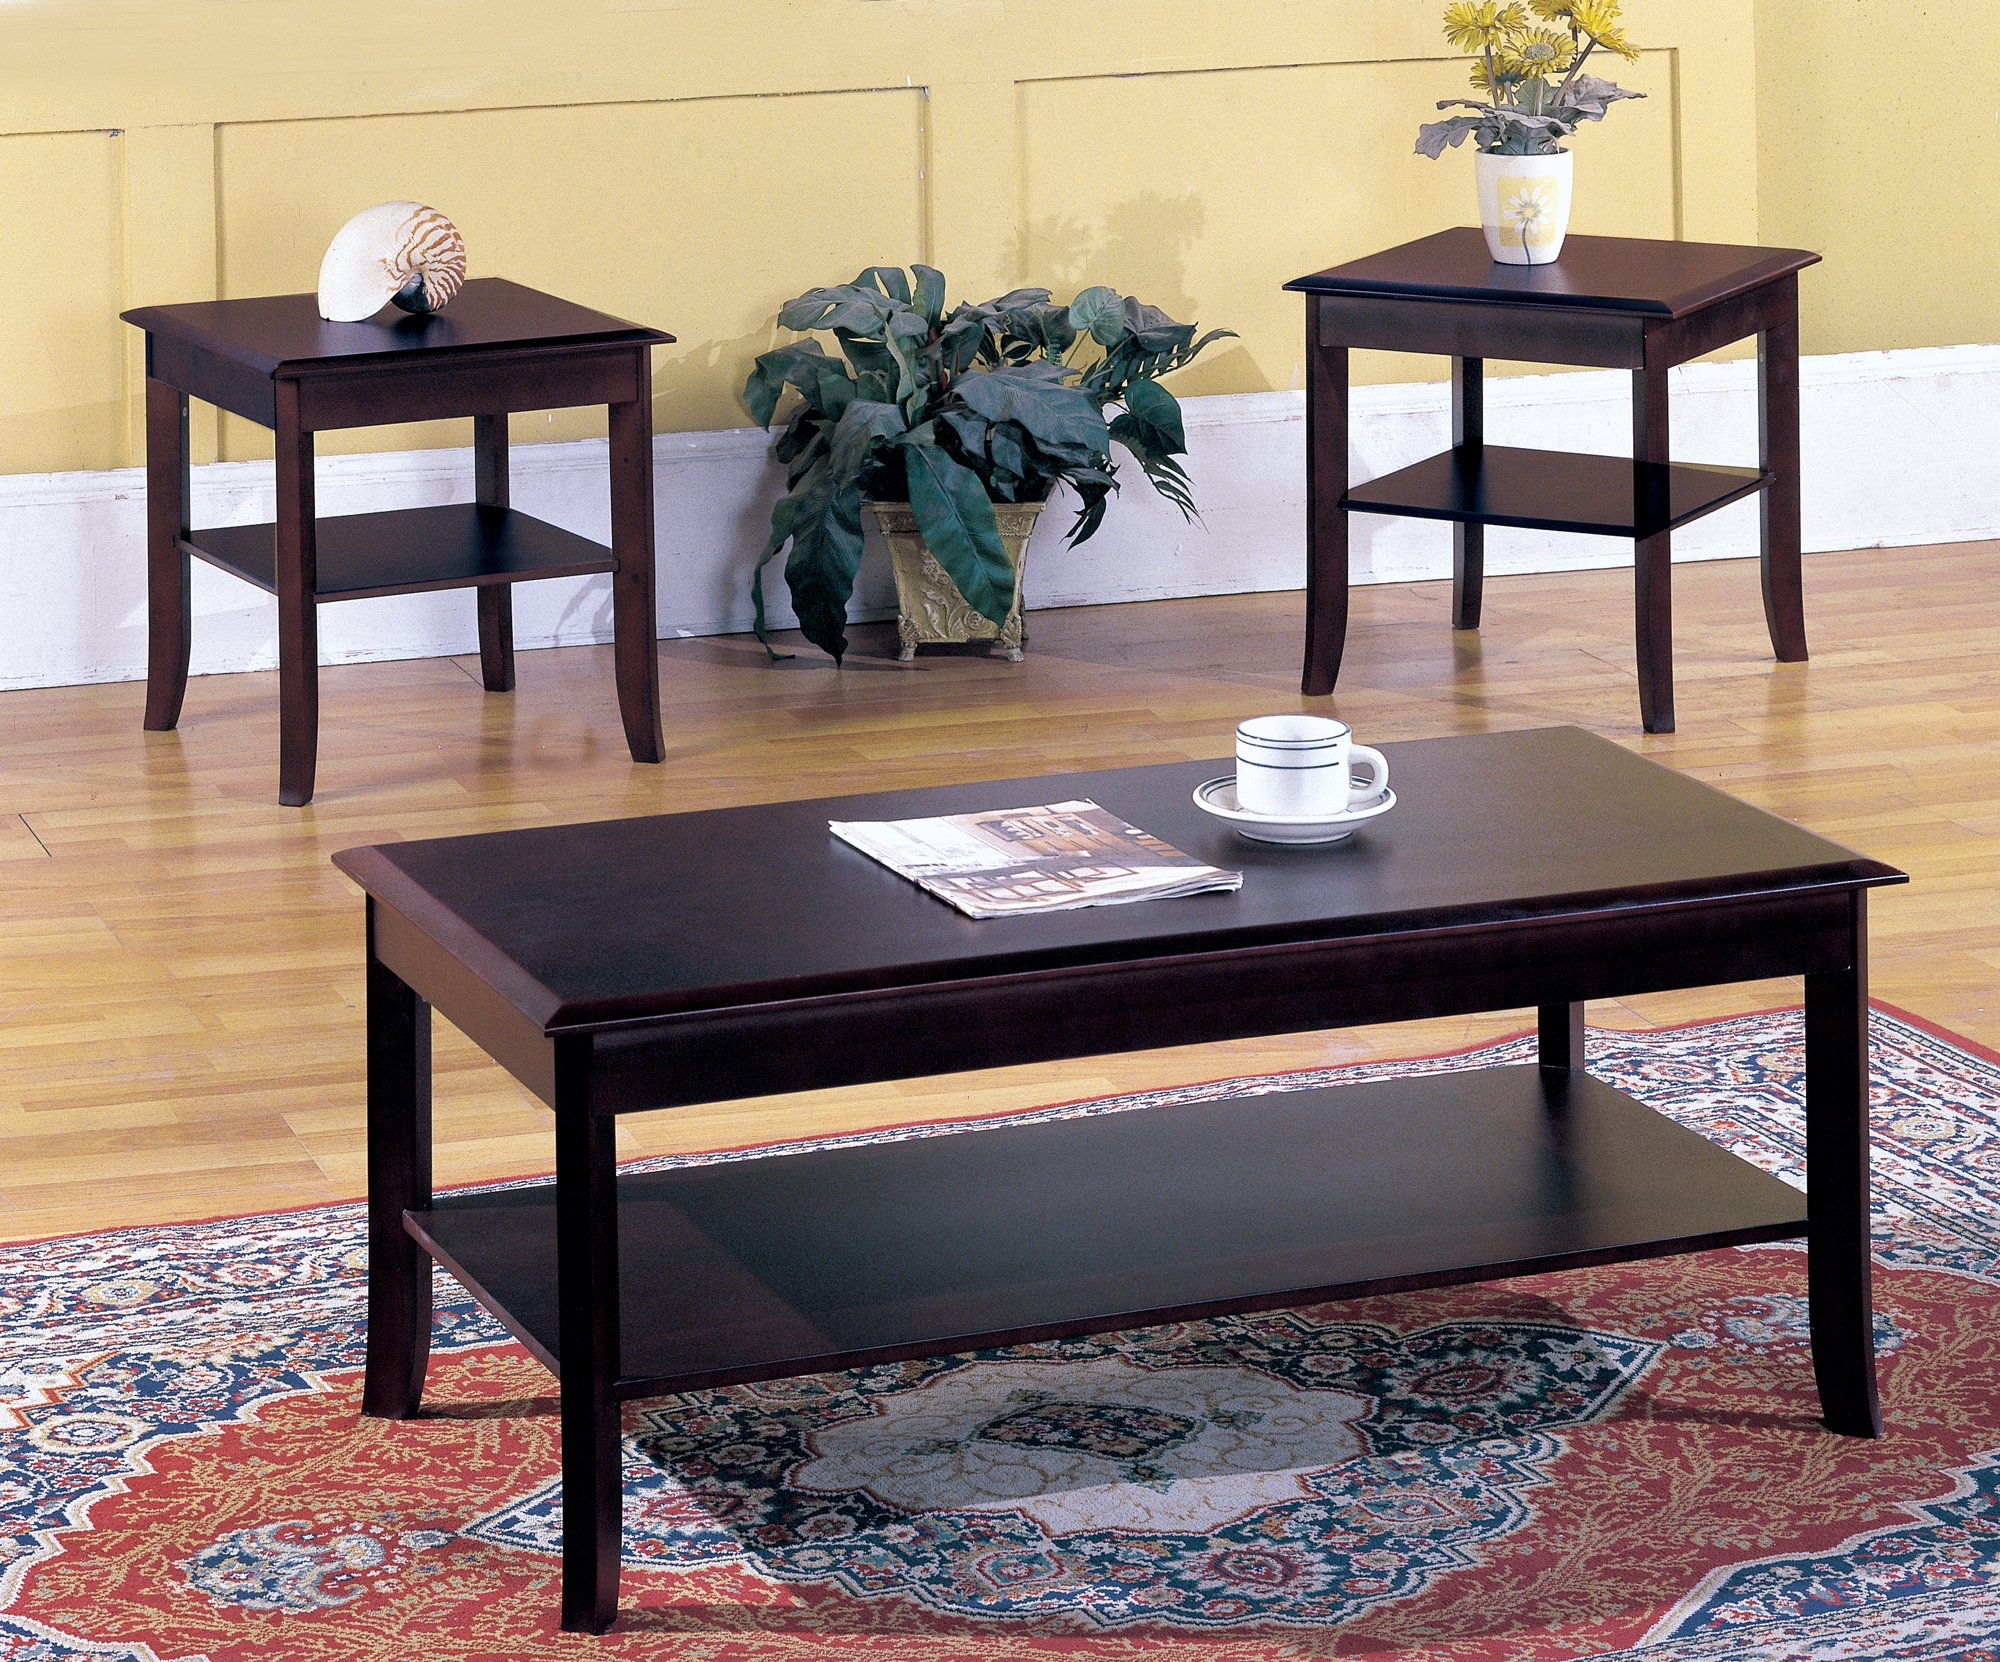 Kings Brand Furniture 3 Piece Wood Occasional Coffee Table & 2 End Tables Set, Cherry by Kings Brand Furniture